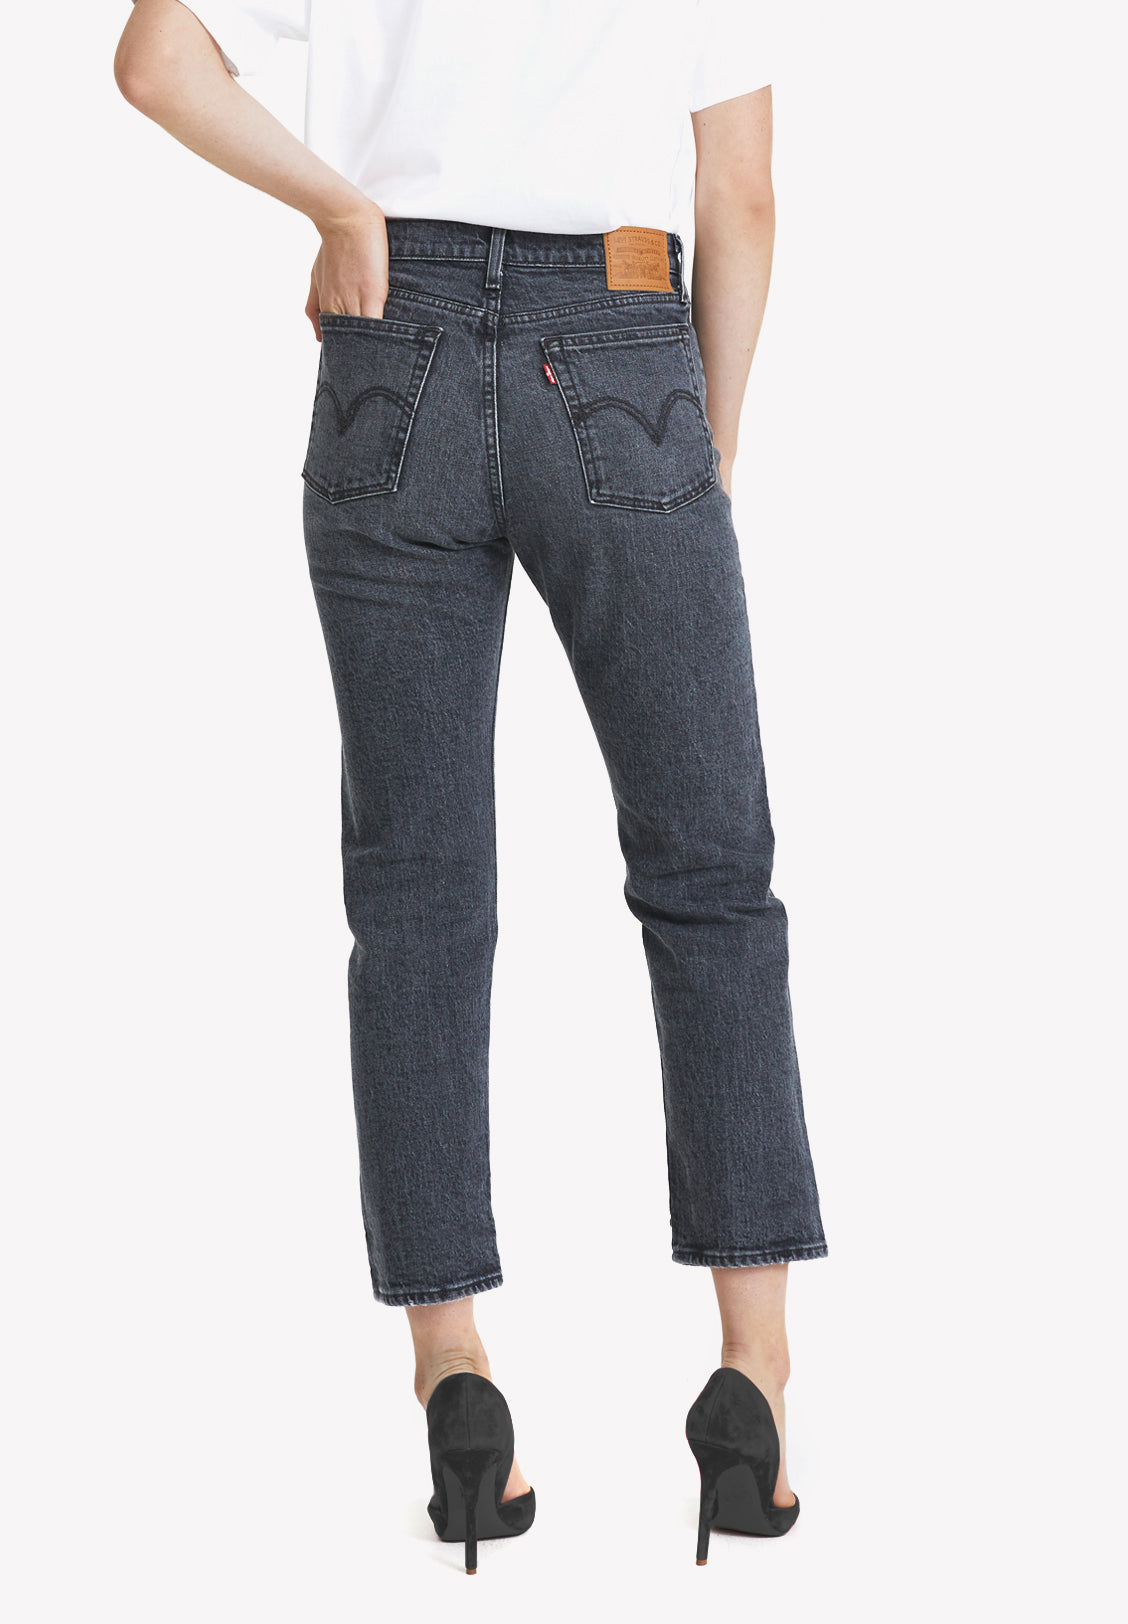 LEVI'S – WOMENS WEDGIE STRAIGHT, BREAK A LEG